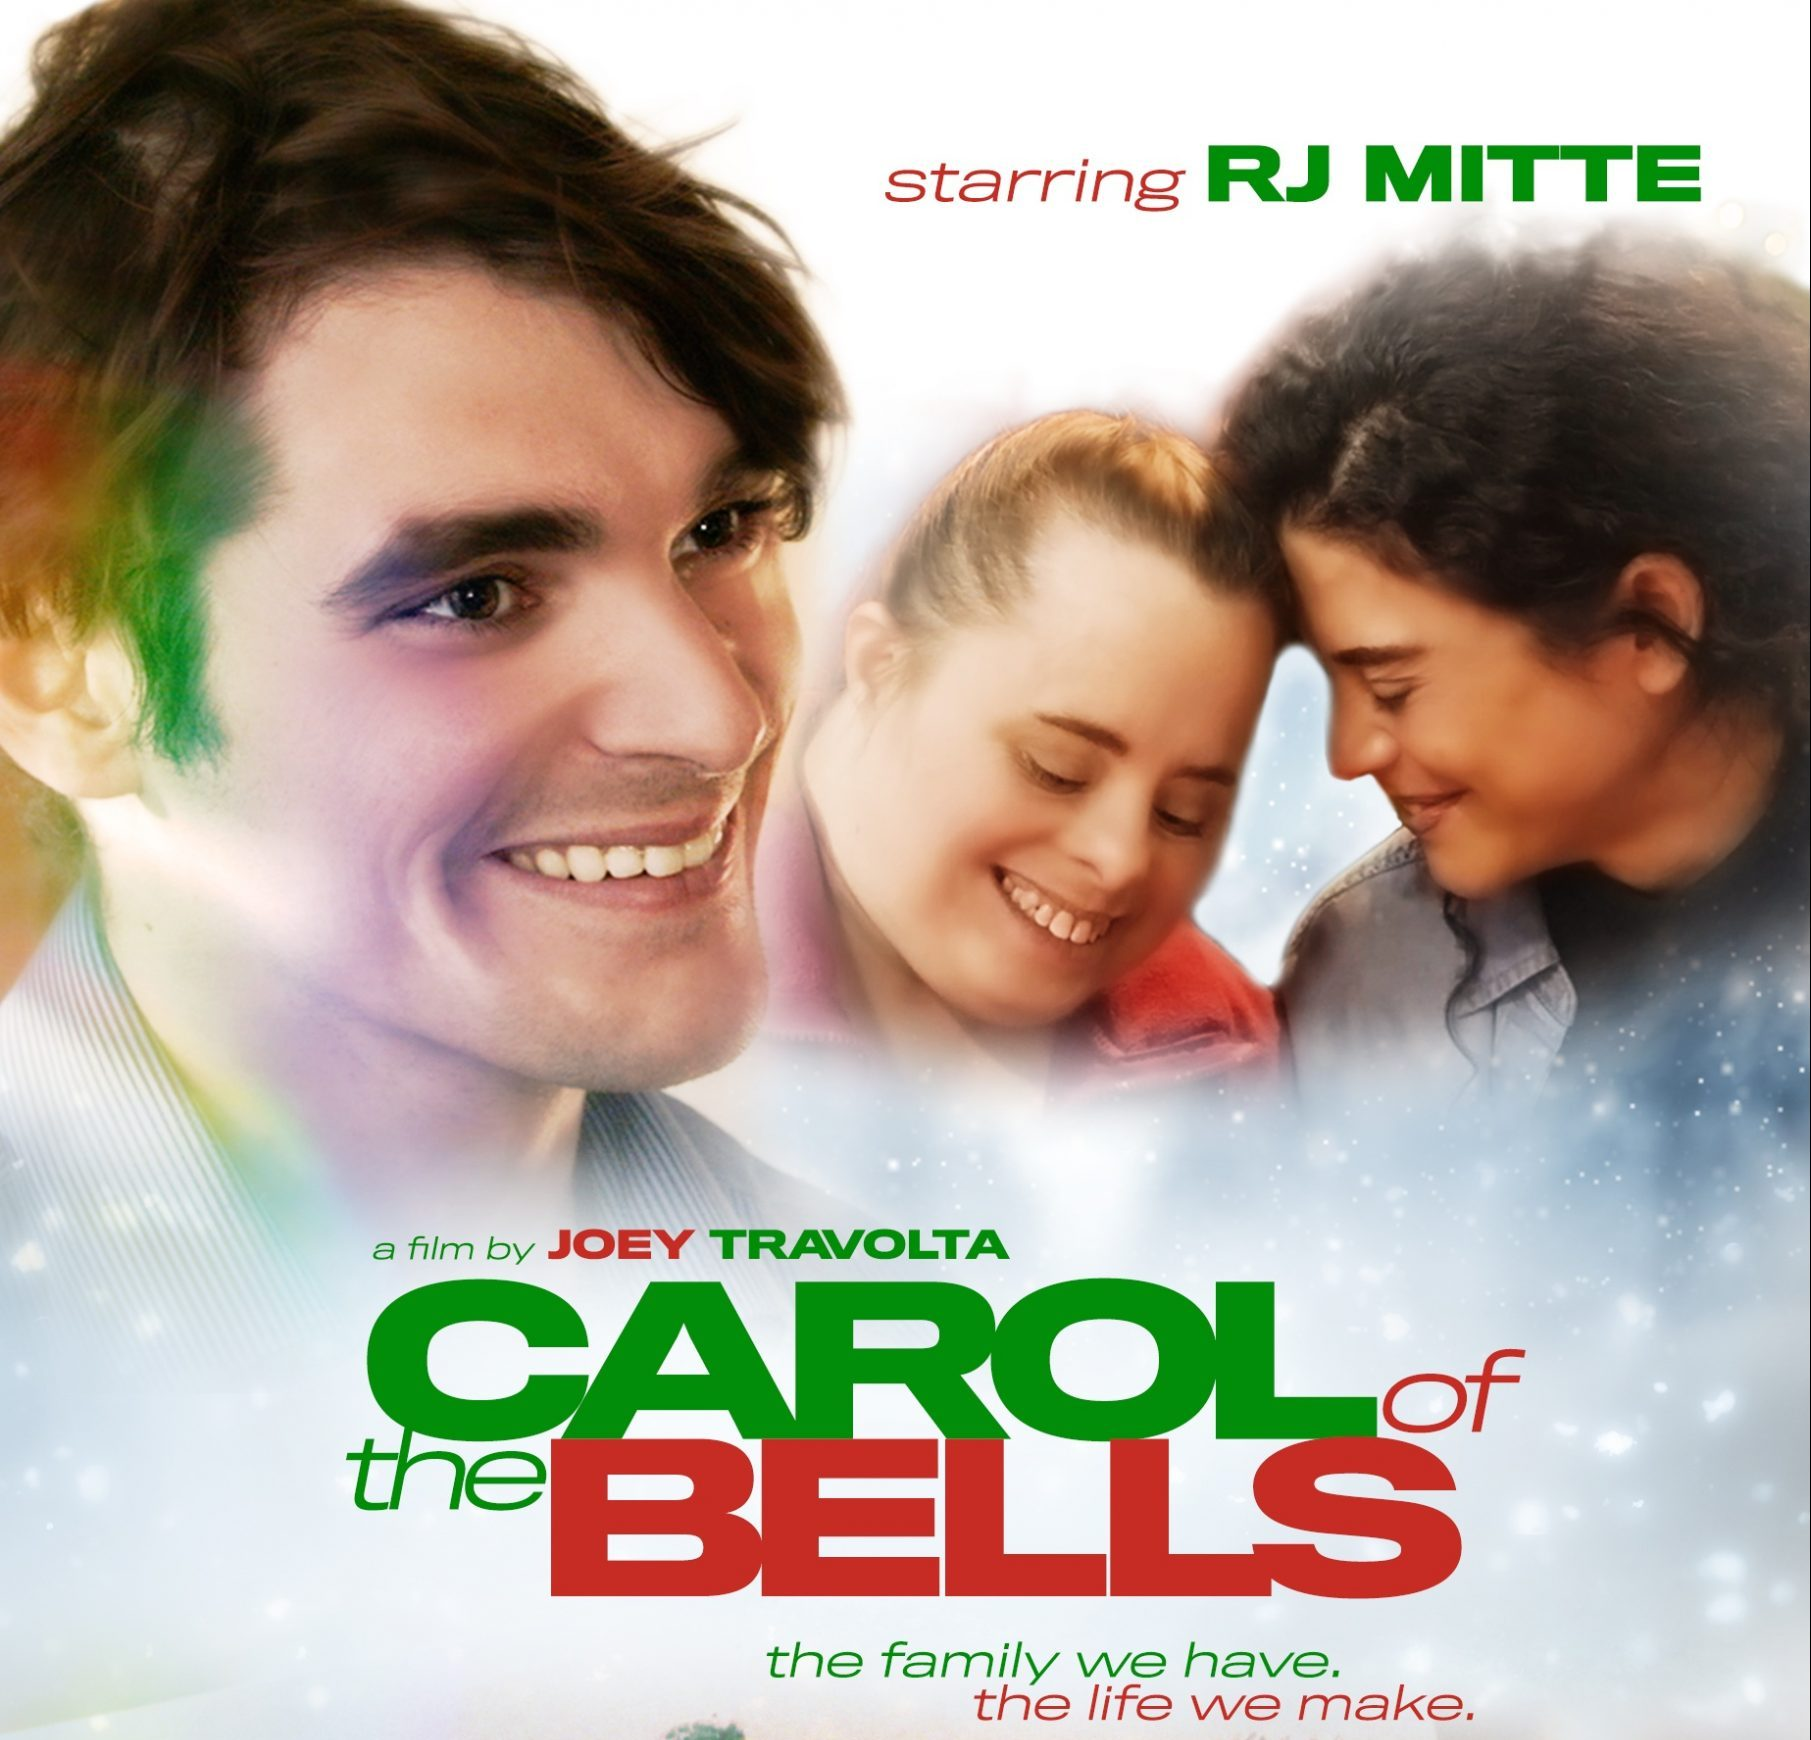 Carol of the Bells movie poster.